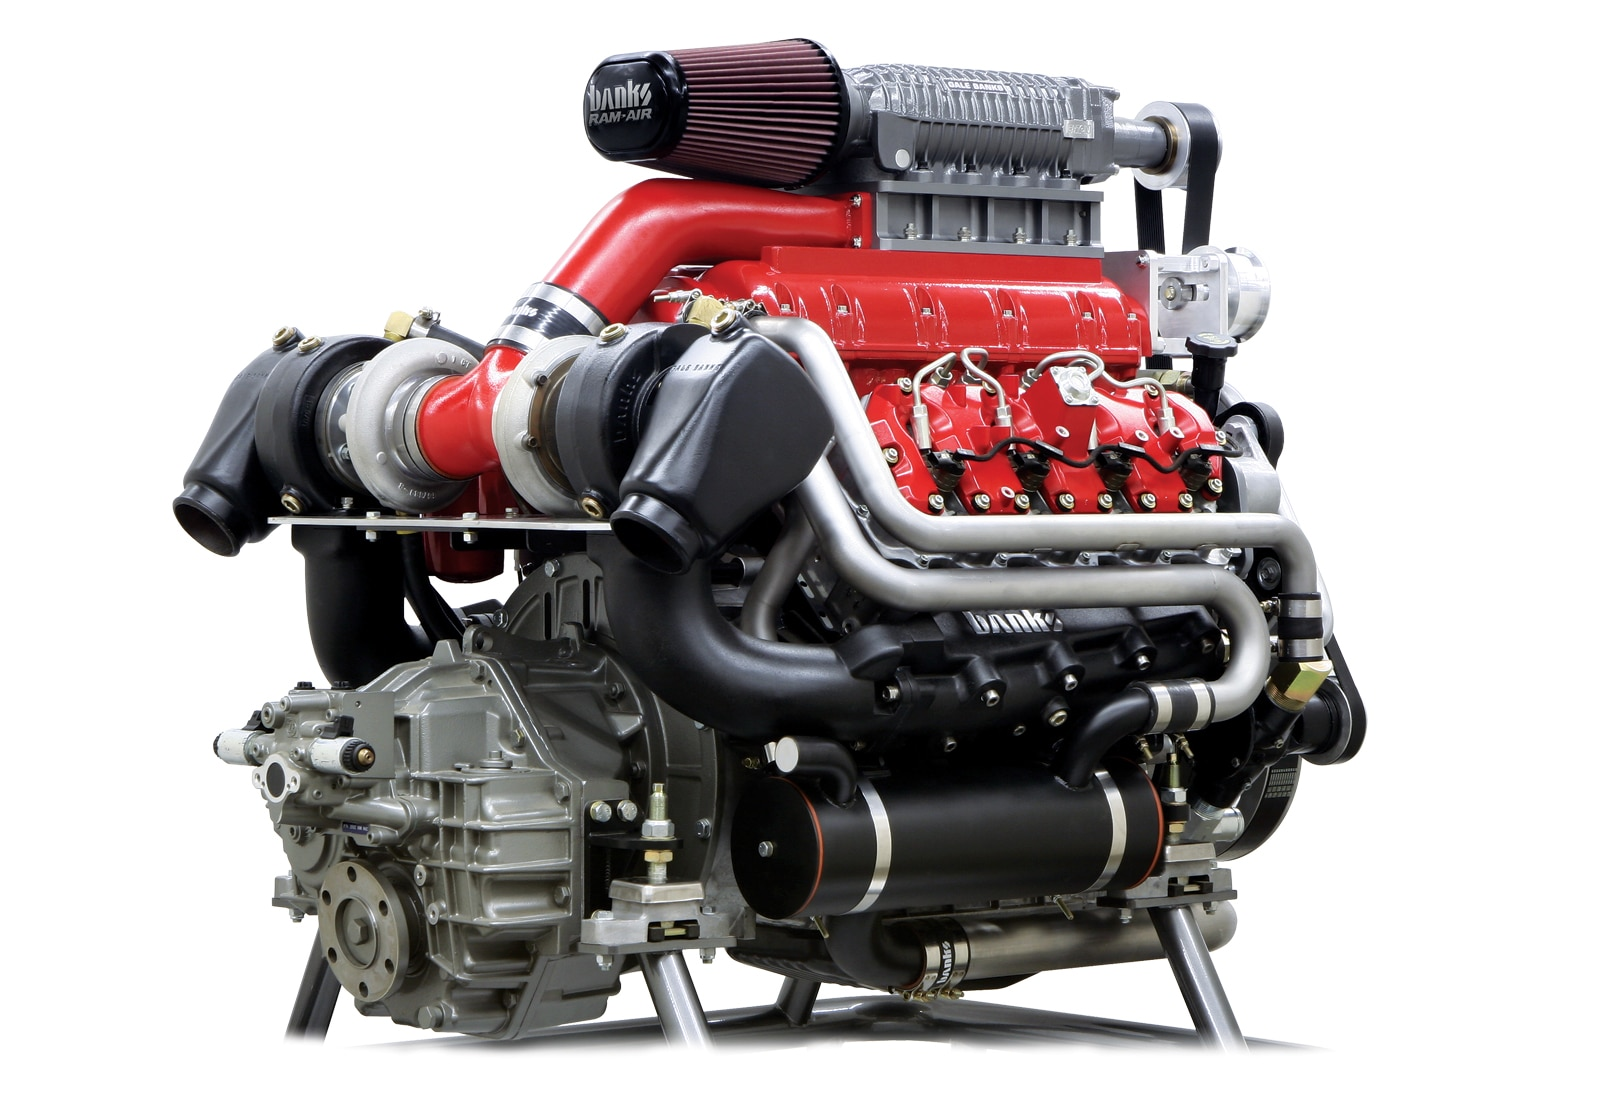 hight resolution of 6 6l duramax diesel engine right front angle